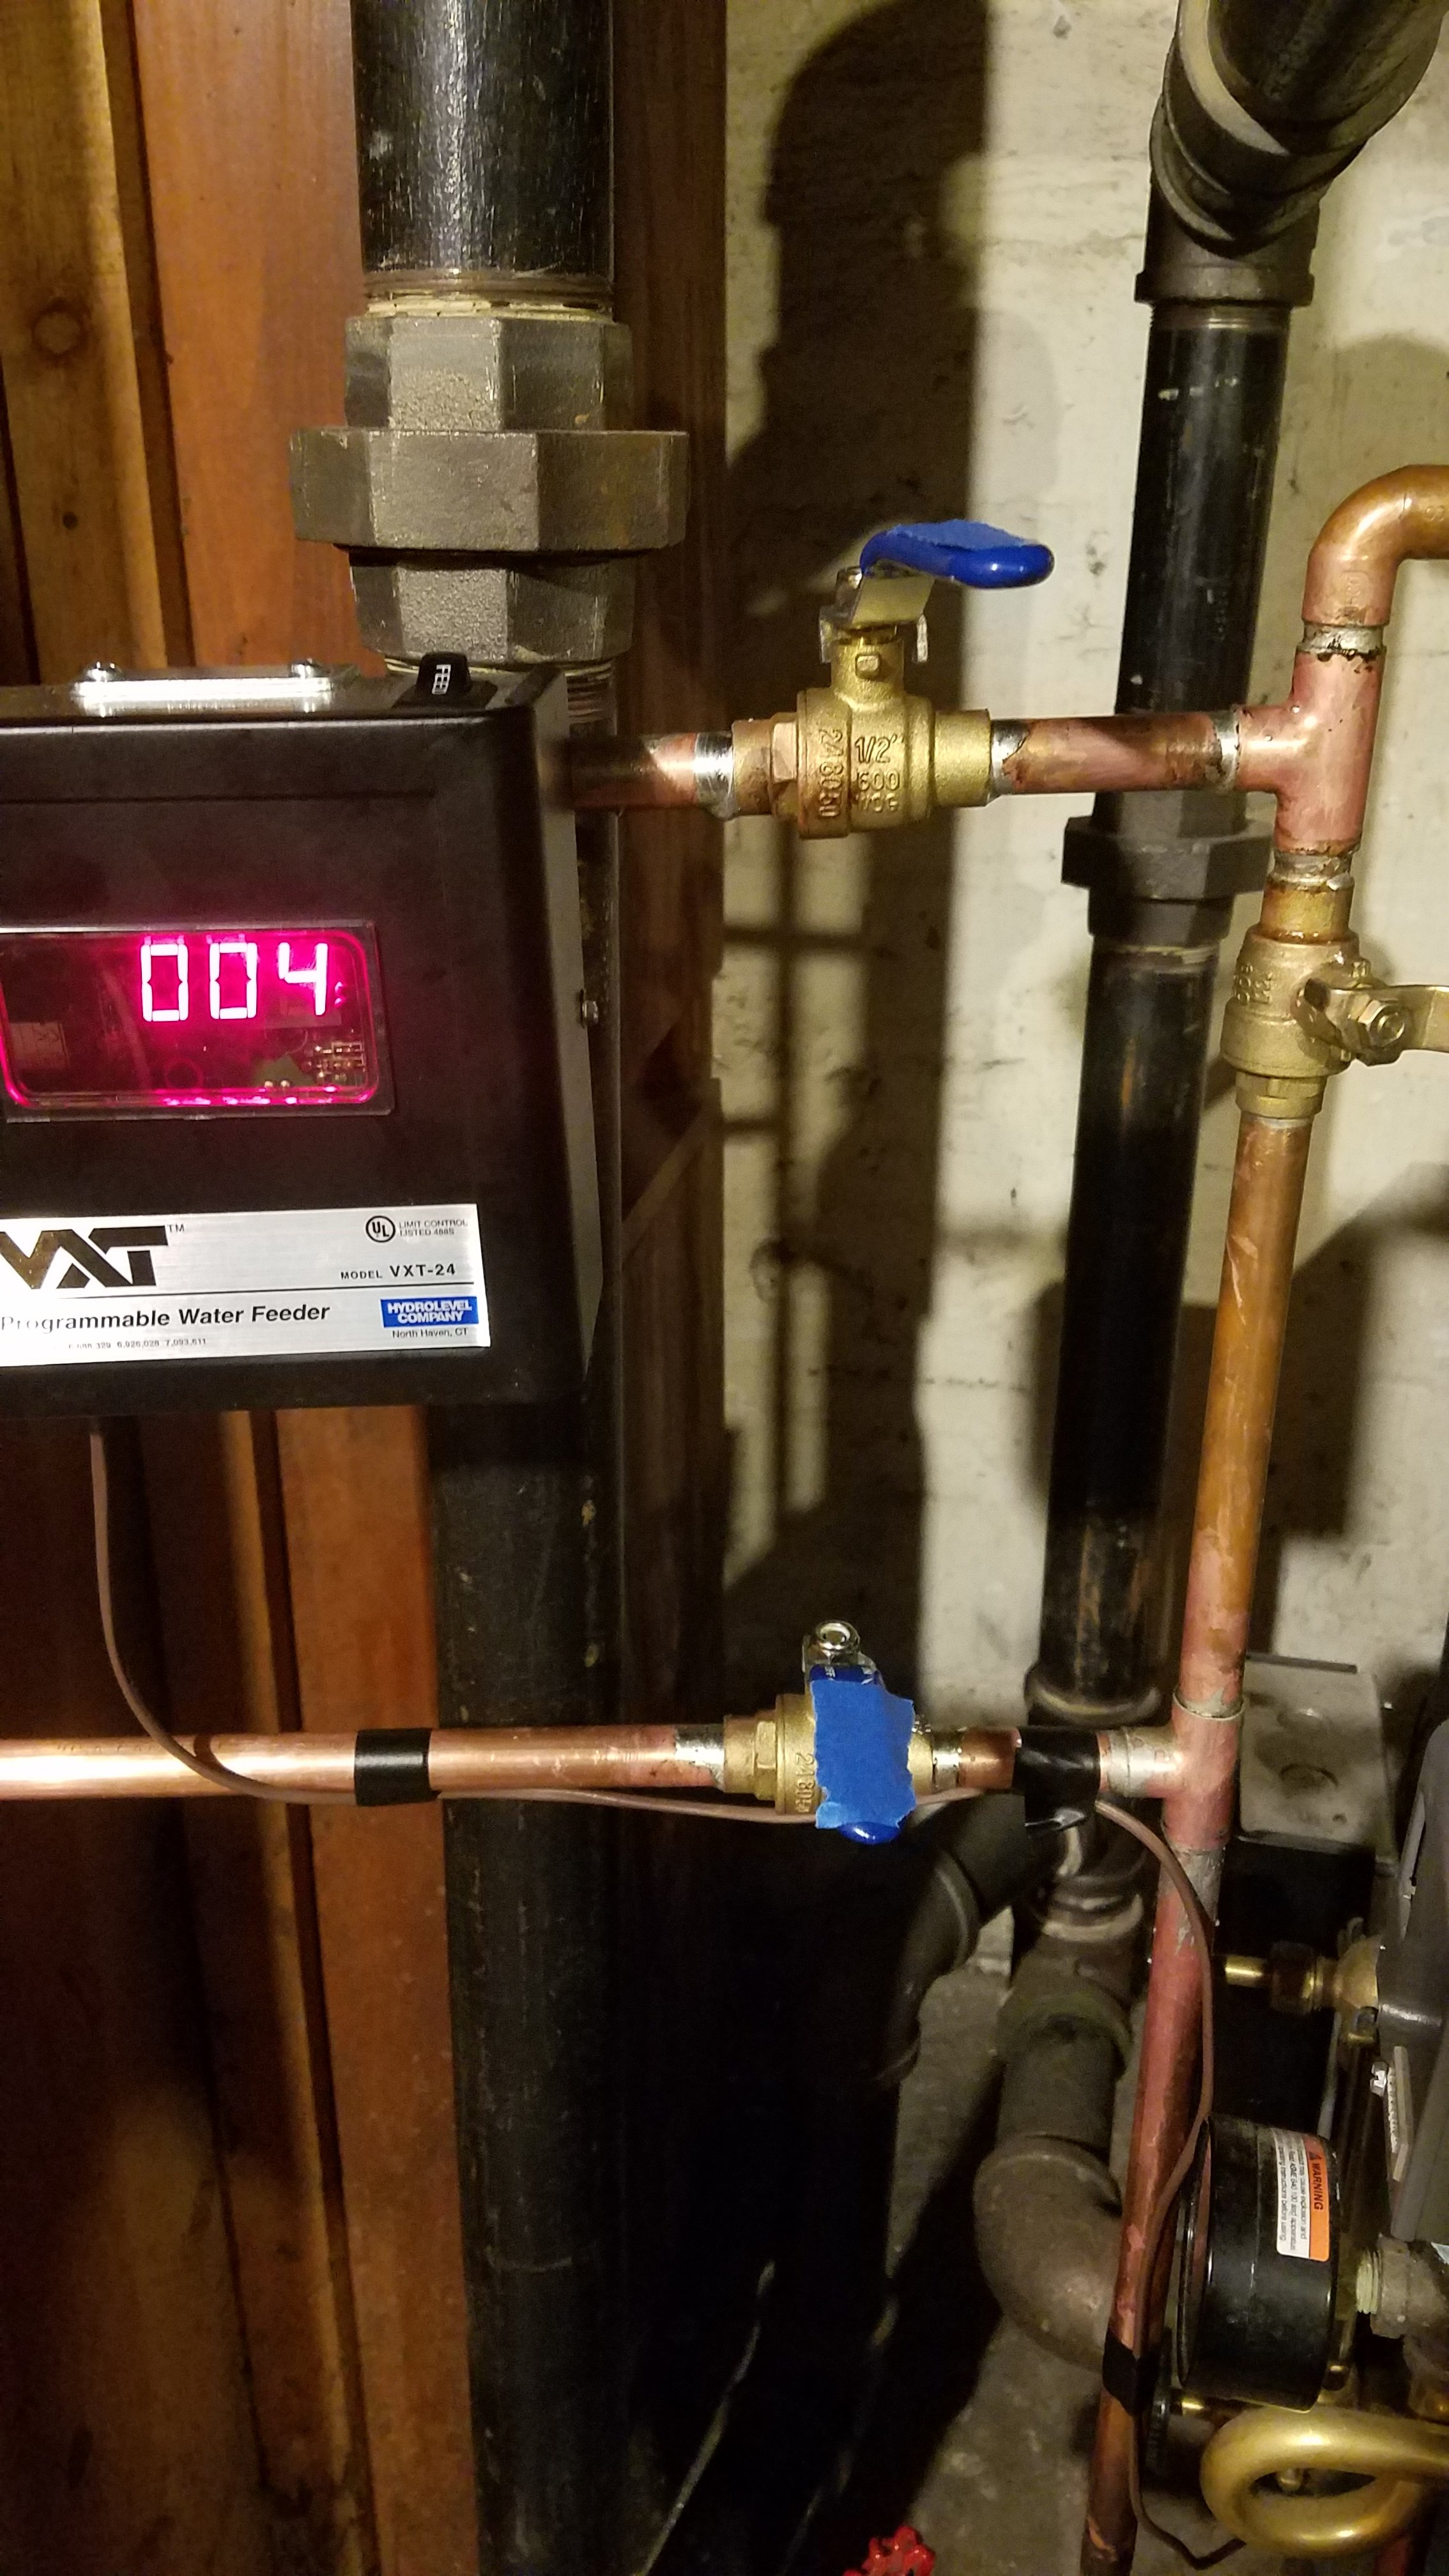 Automatic Water Feeder Install Questions On Steam Boiler